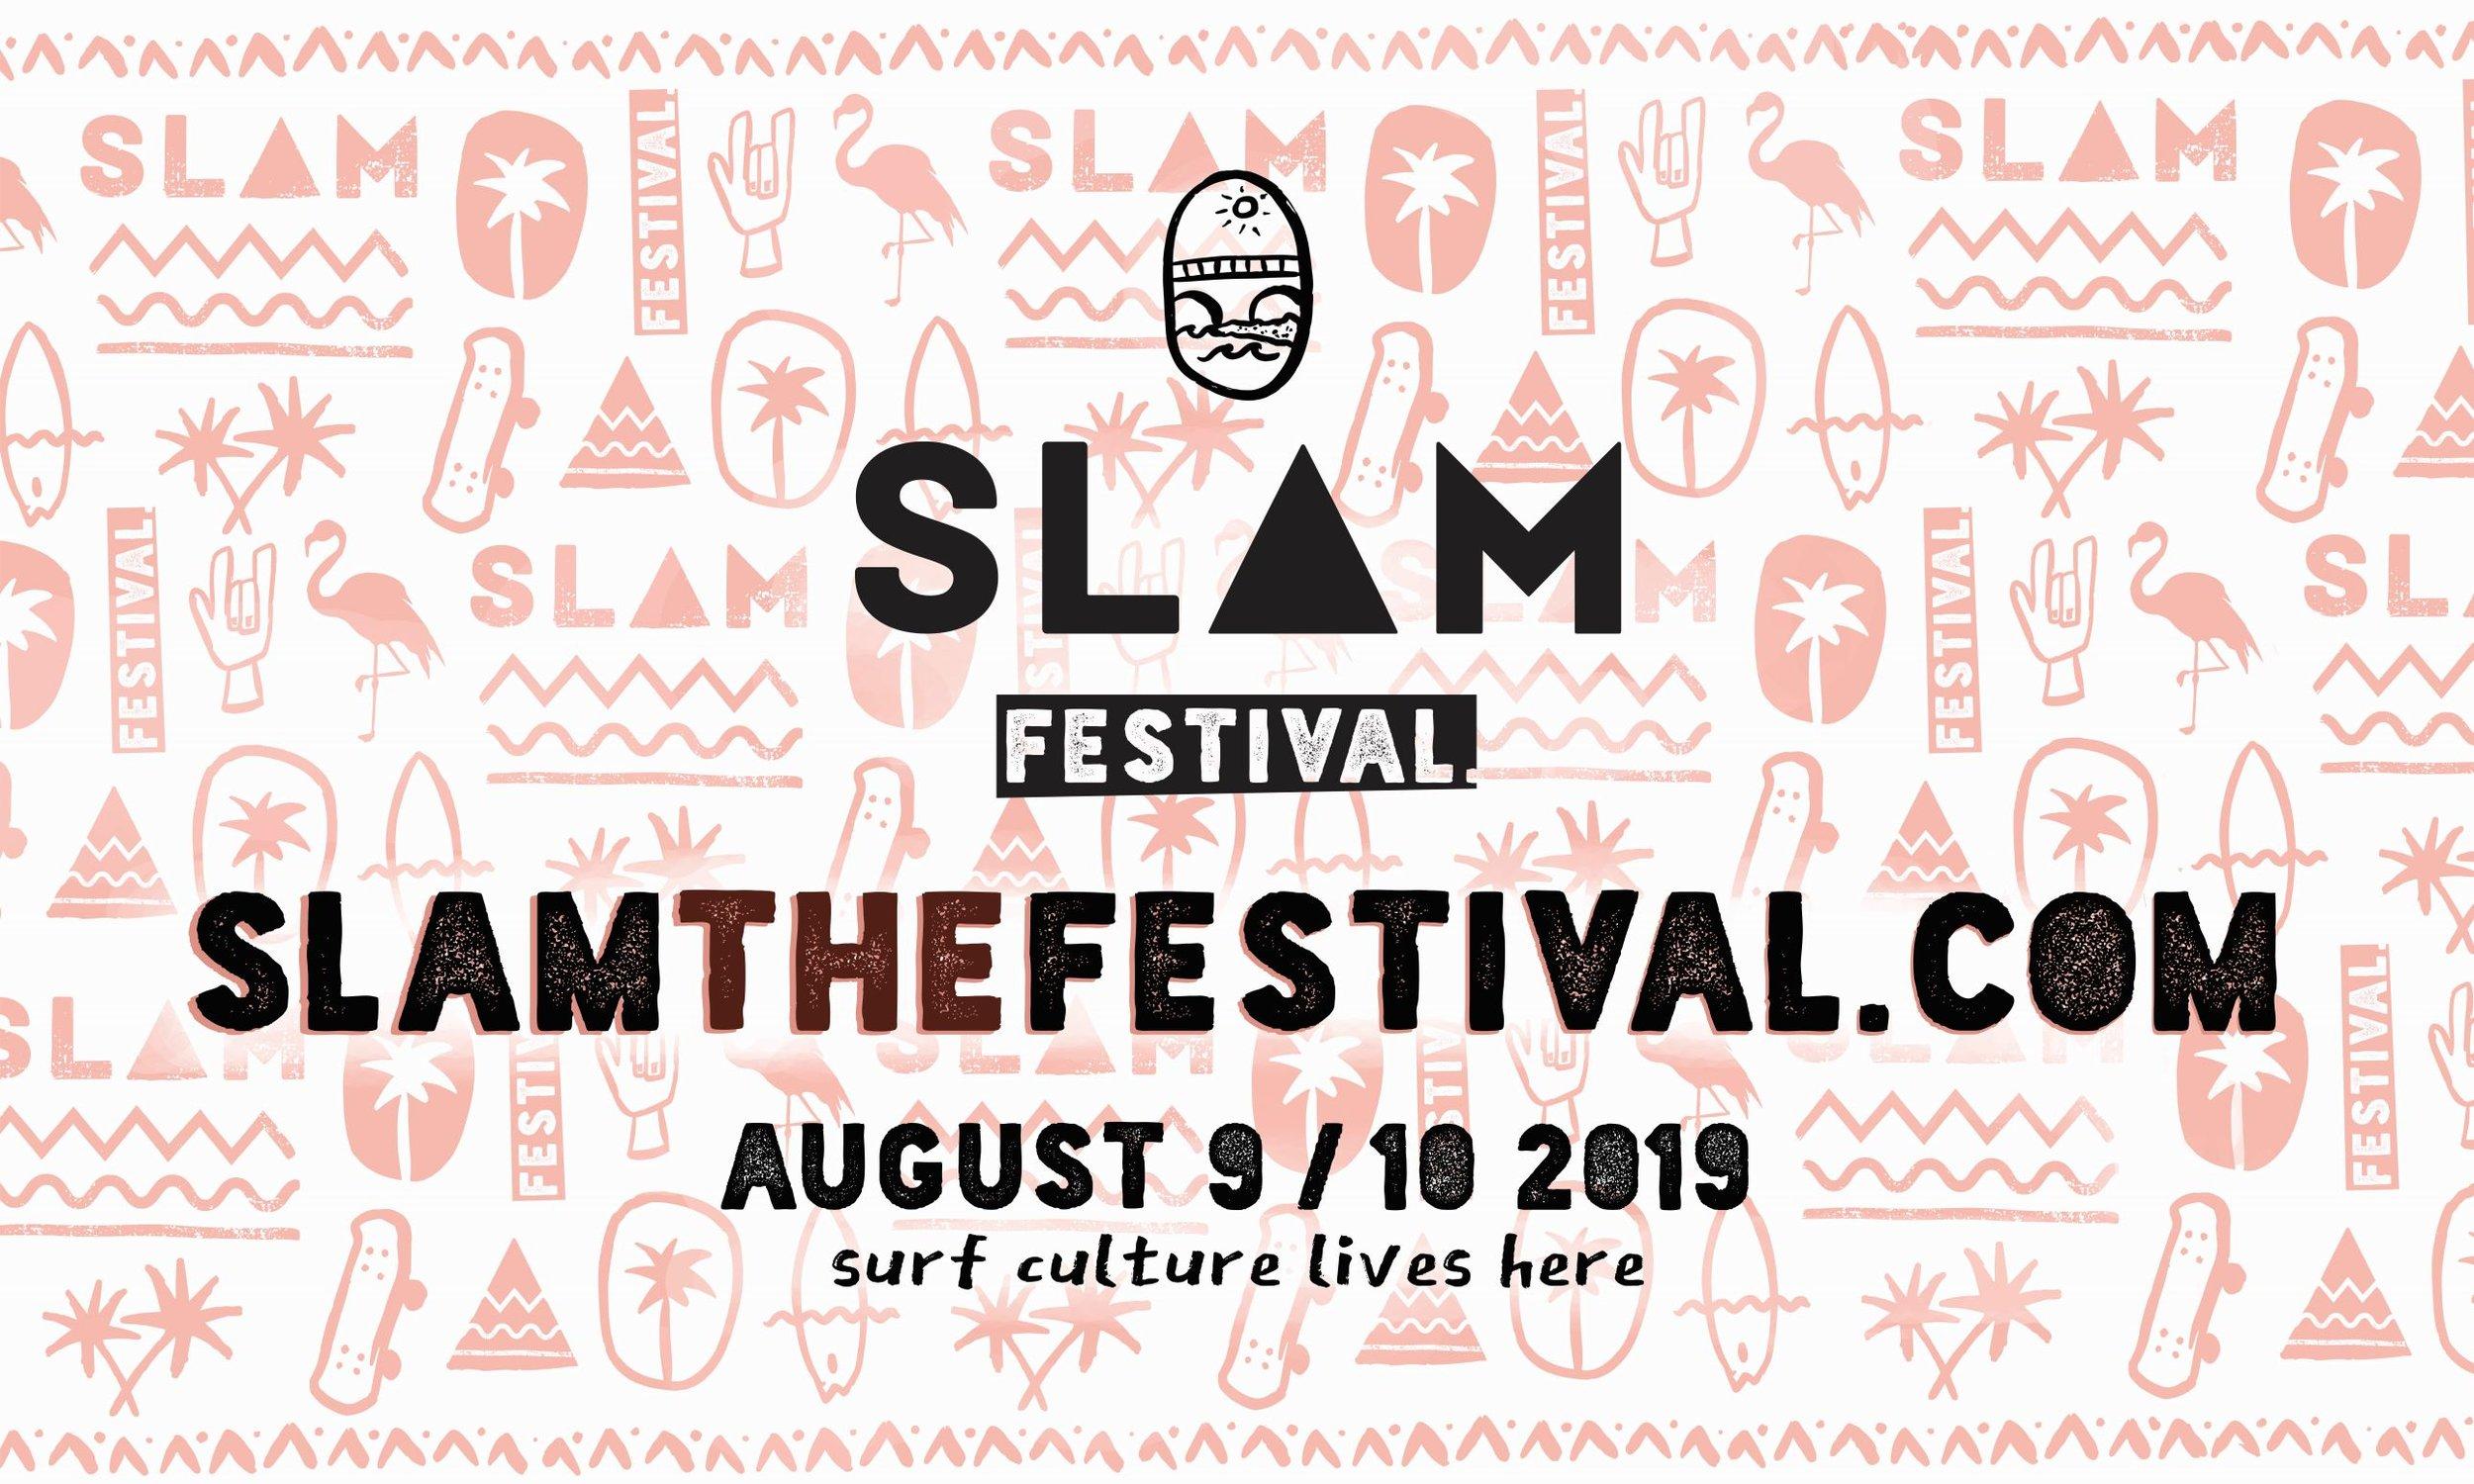 Slam Calgary 2019 by the Alberta RSA